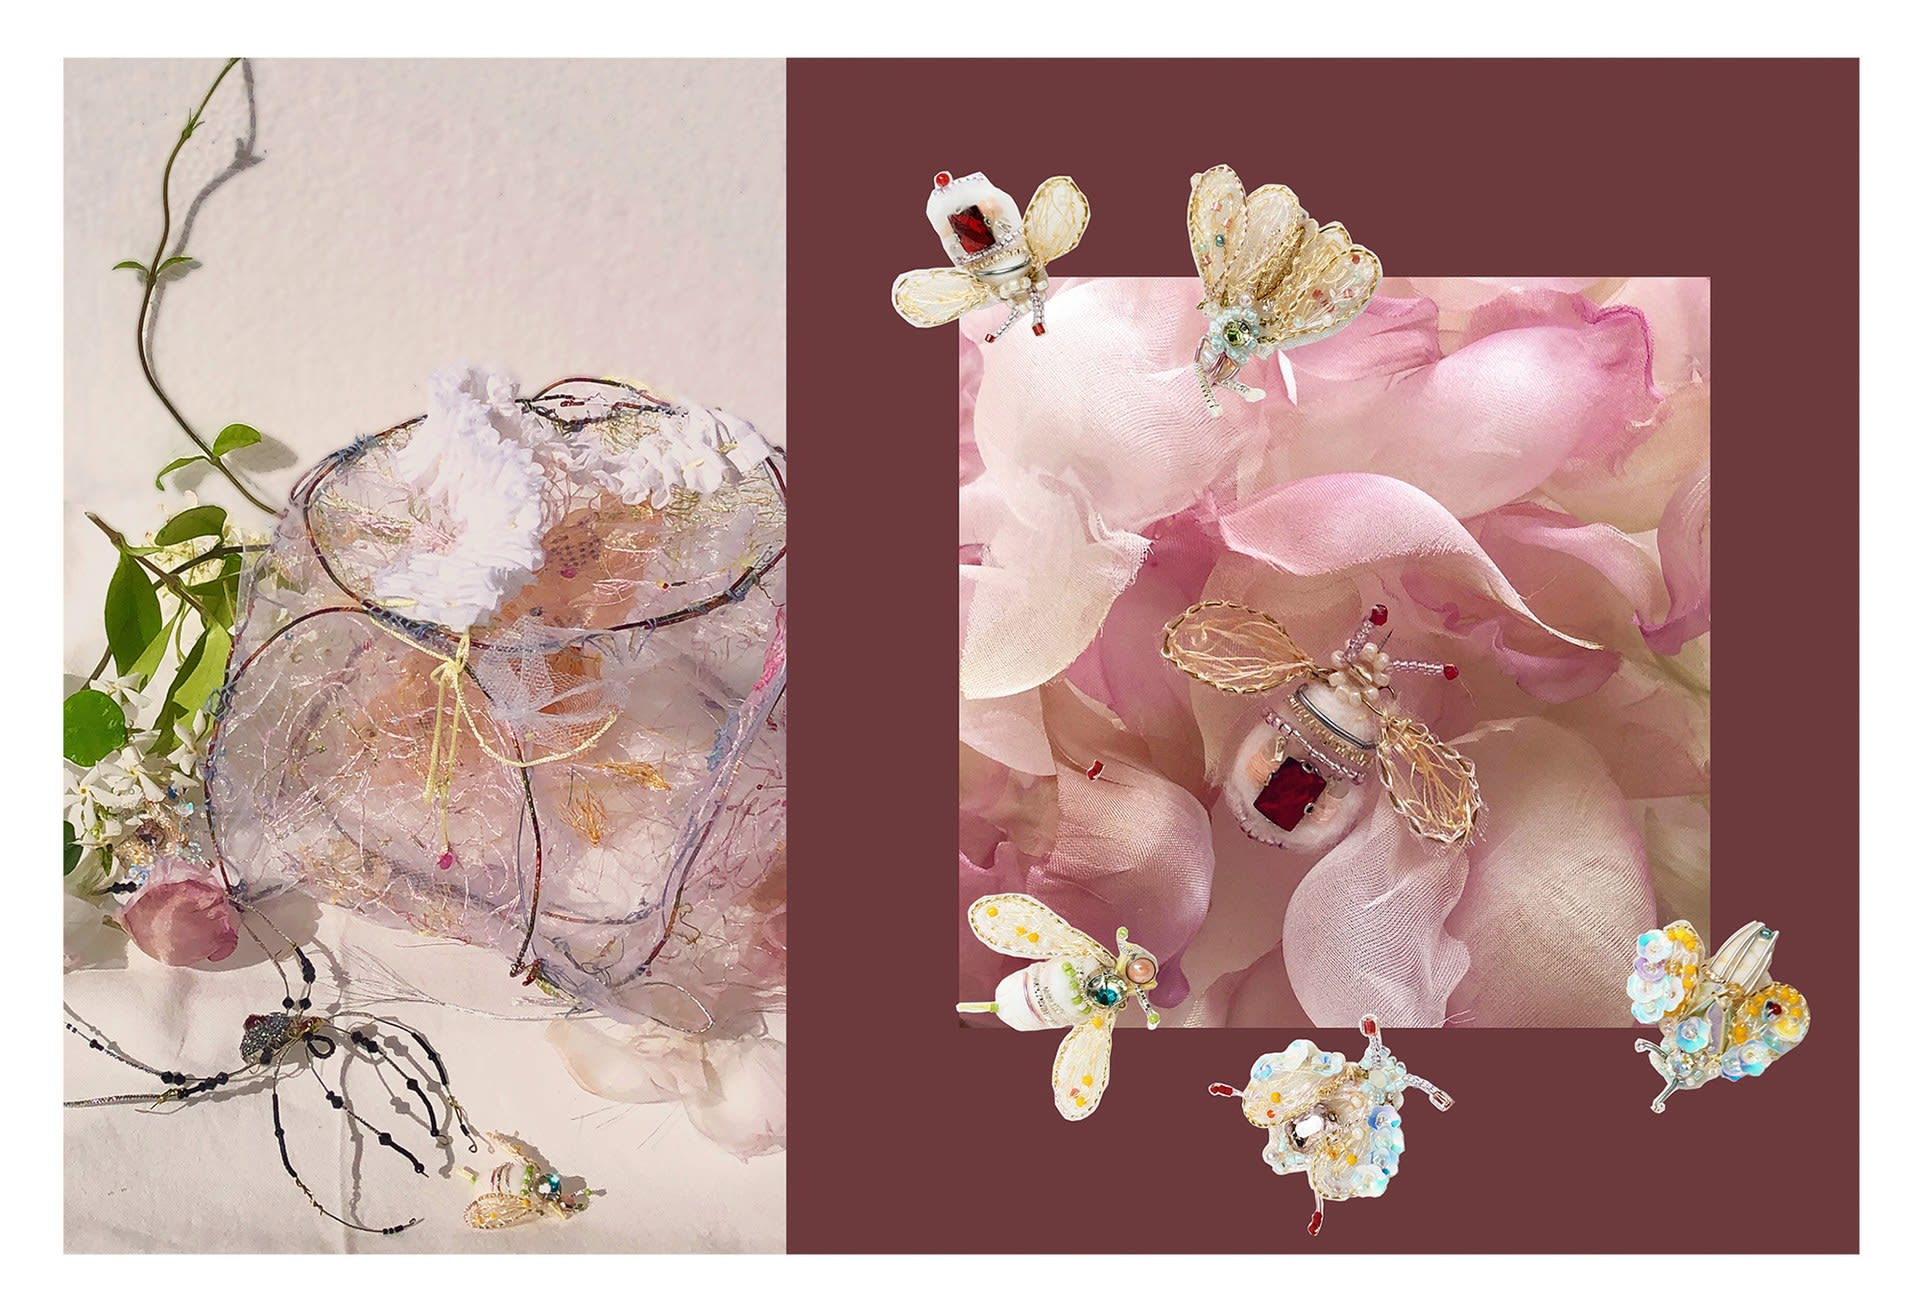 The details of Flower Ball & Honeycomb